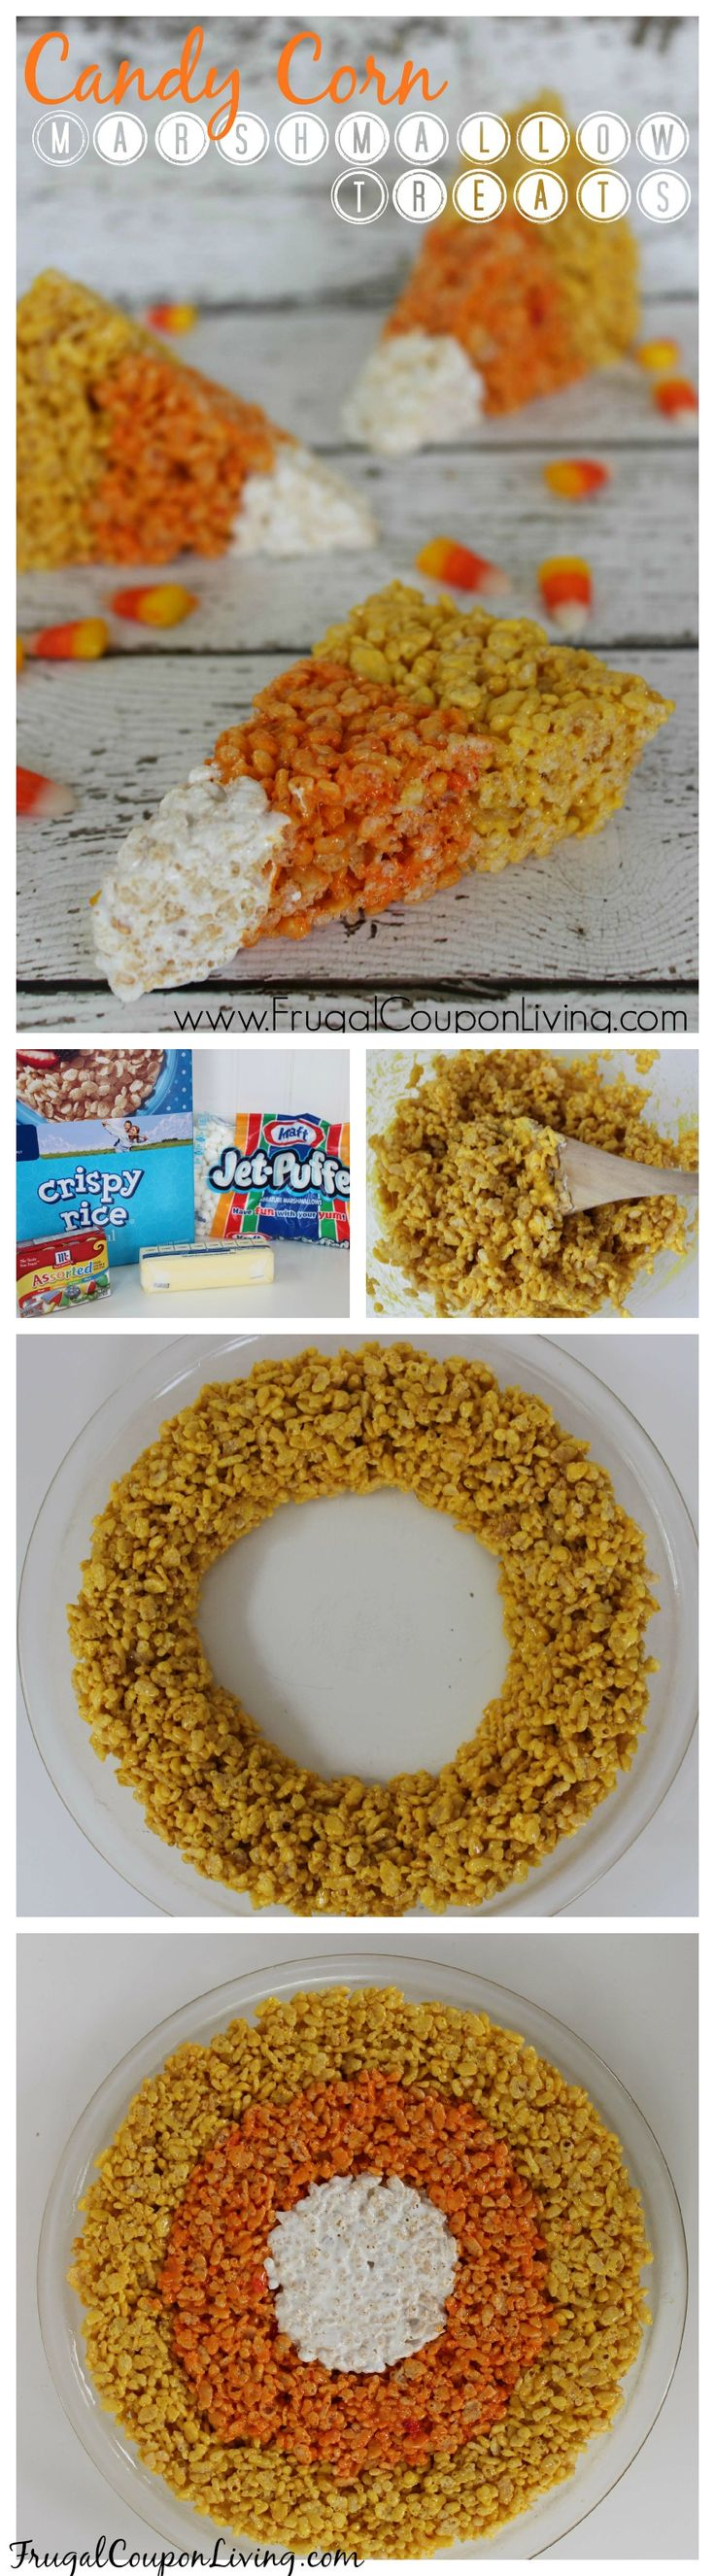 Candy Corn Rice Krispie Treats for Halloween Season #halloween #candycorn #ricekrispietreats #ricekrispies #october #party #treats http://www.frugalcouponliving.com/2014/09/01/candy-corn-rice-krispie-treats/